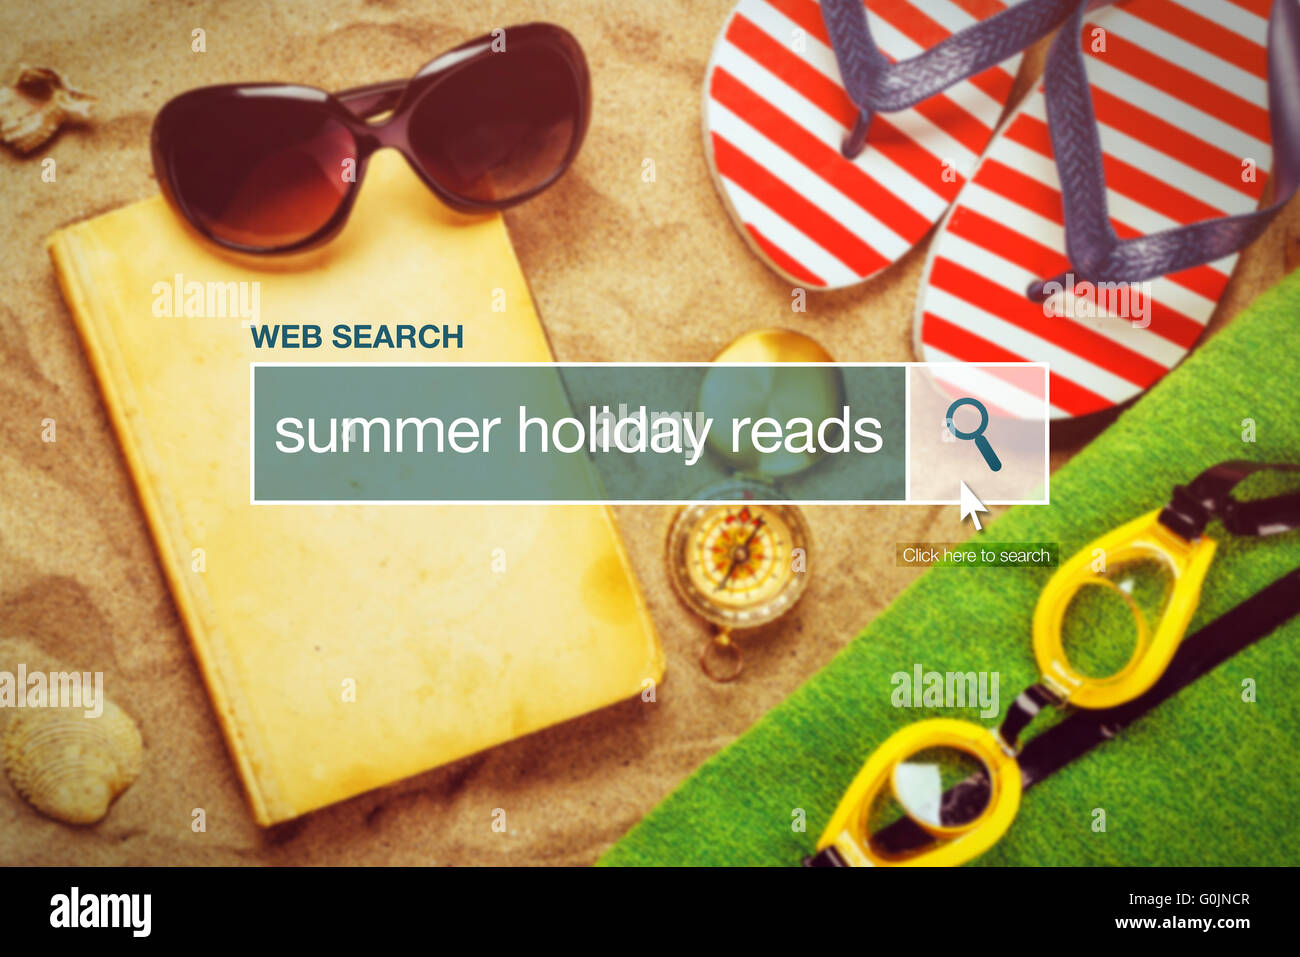 Web search bar glossary term - summer holiday reads definition in internet glossary. - Stock Image